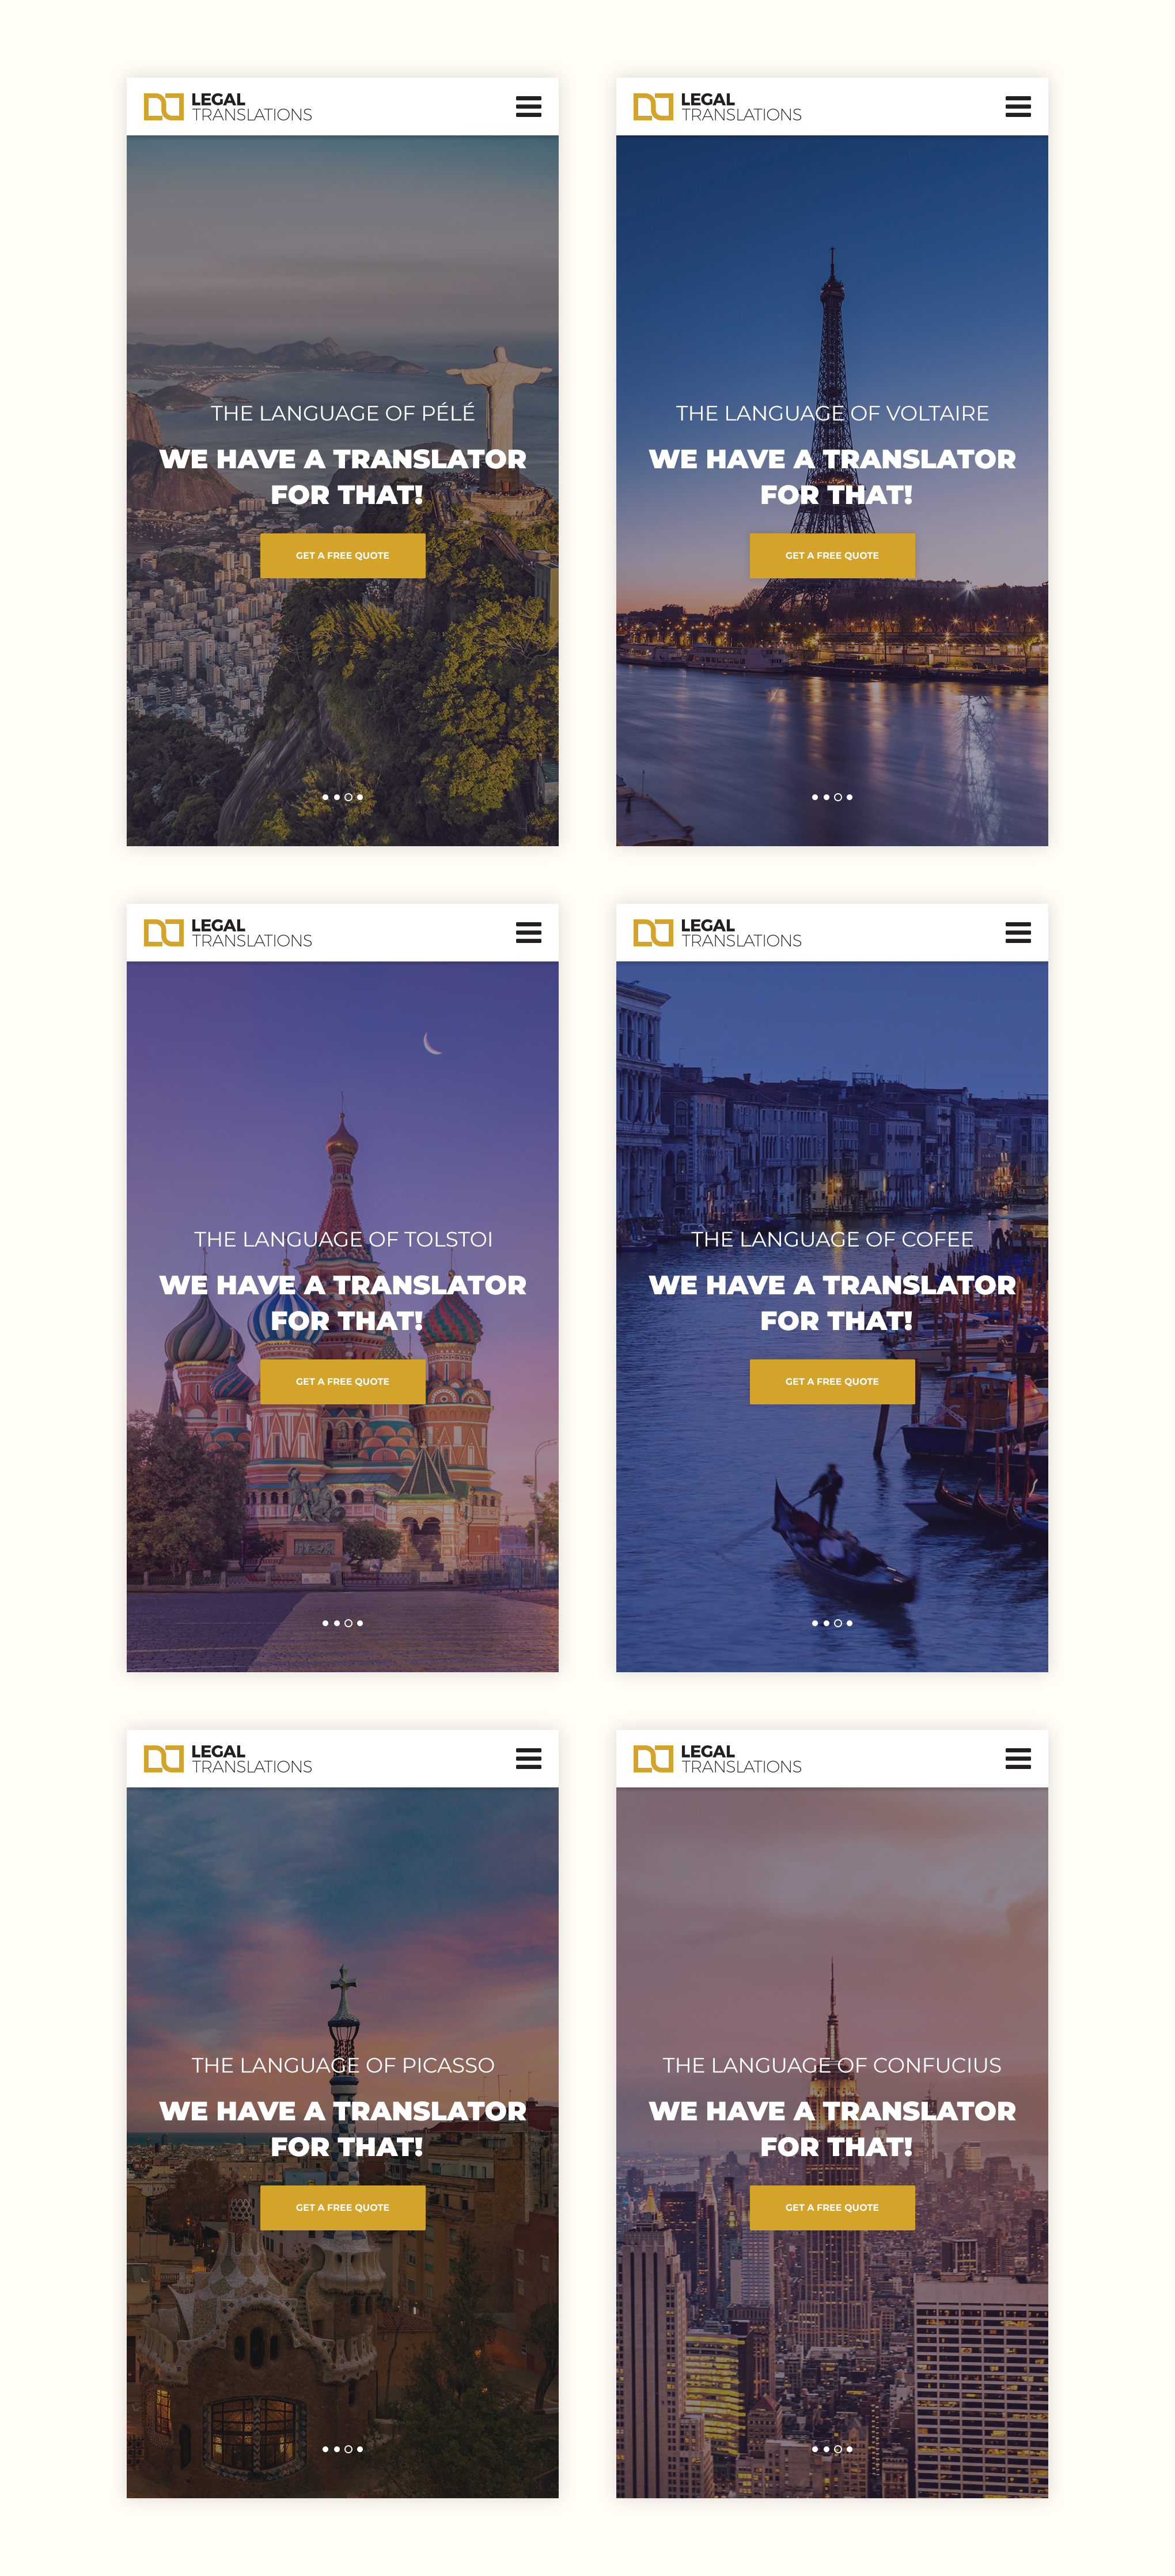 Awe-inspiring responsive design that transports you to exotic business locations.